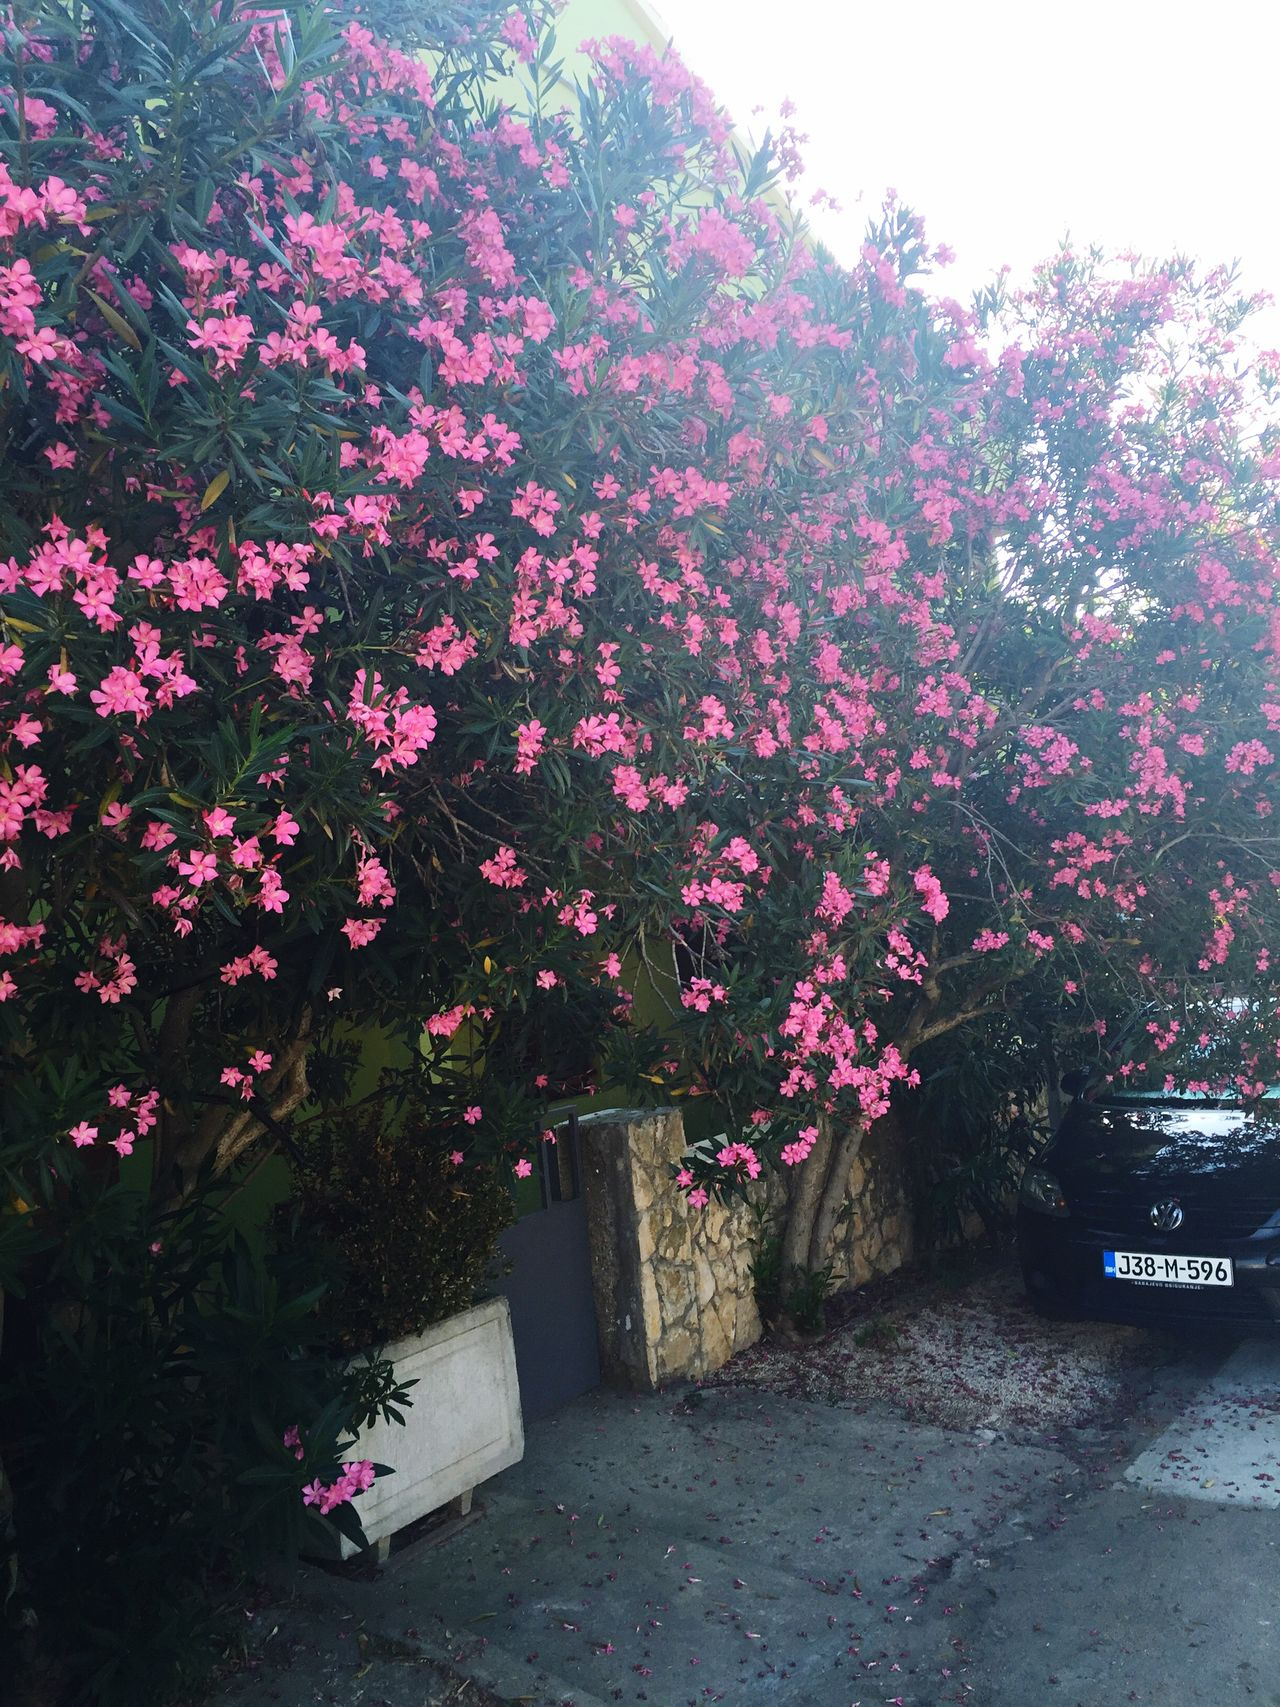 TakeoverContrast Flower Tree Growth Freshness Pink Color Blossom Beauty In Nature Nature Plant Pink Day Outdoors Summer Calm On The Move Croatia